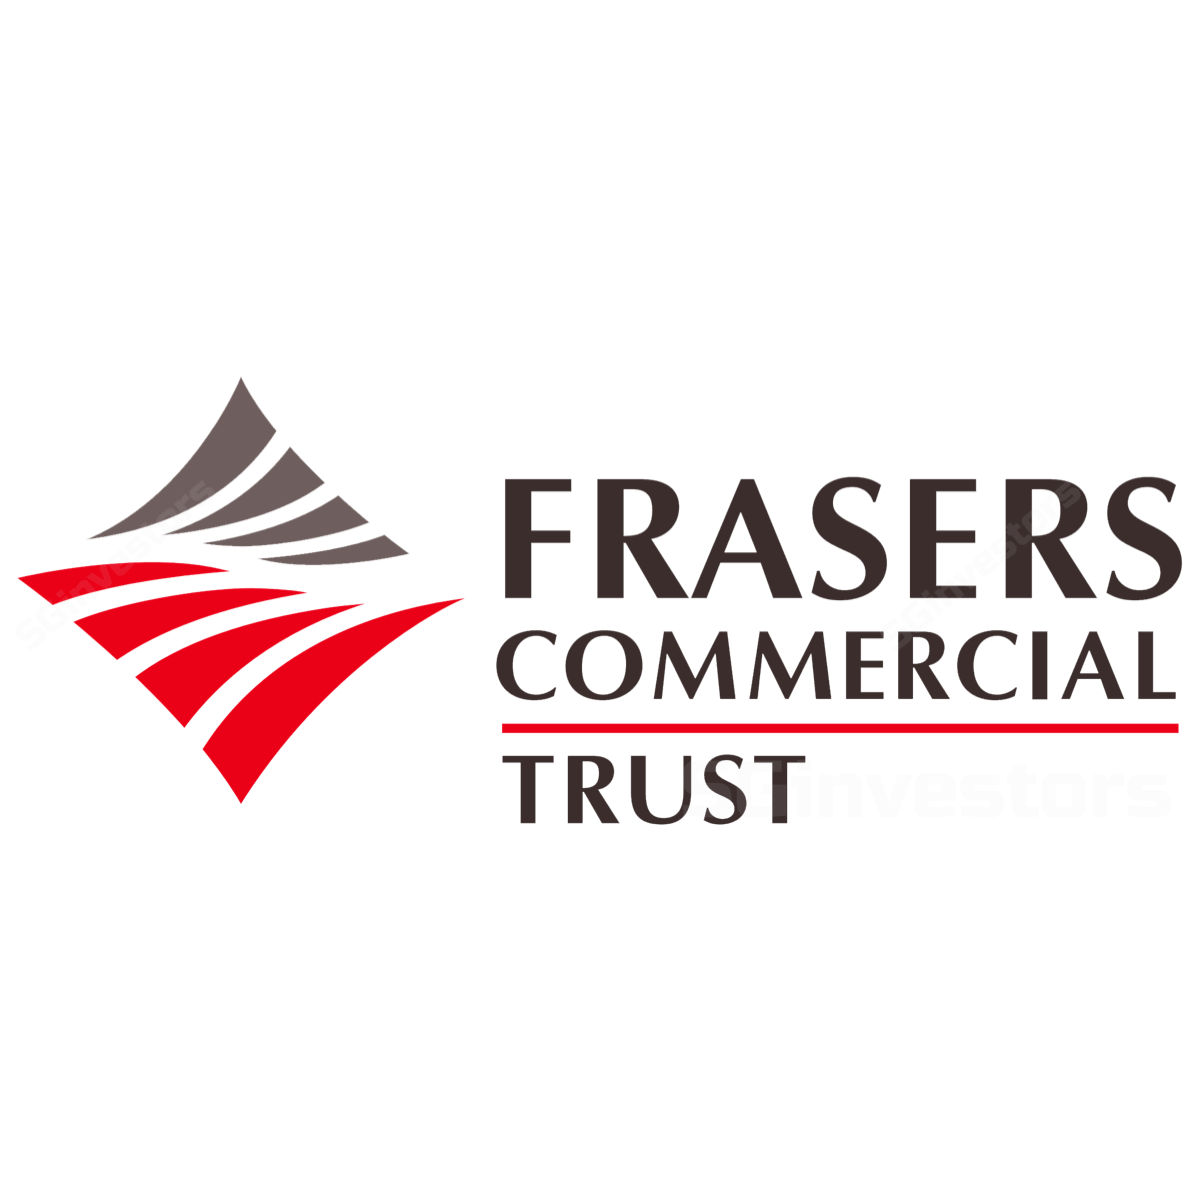 Frasers Commercial Trust - OCBC Investment 2018-04-23: You Don't Always Have To Get Grade A